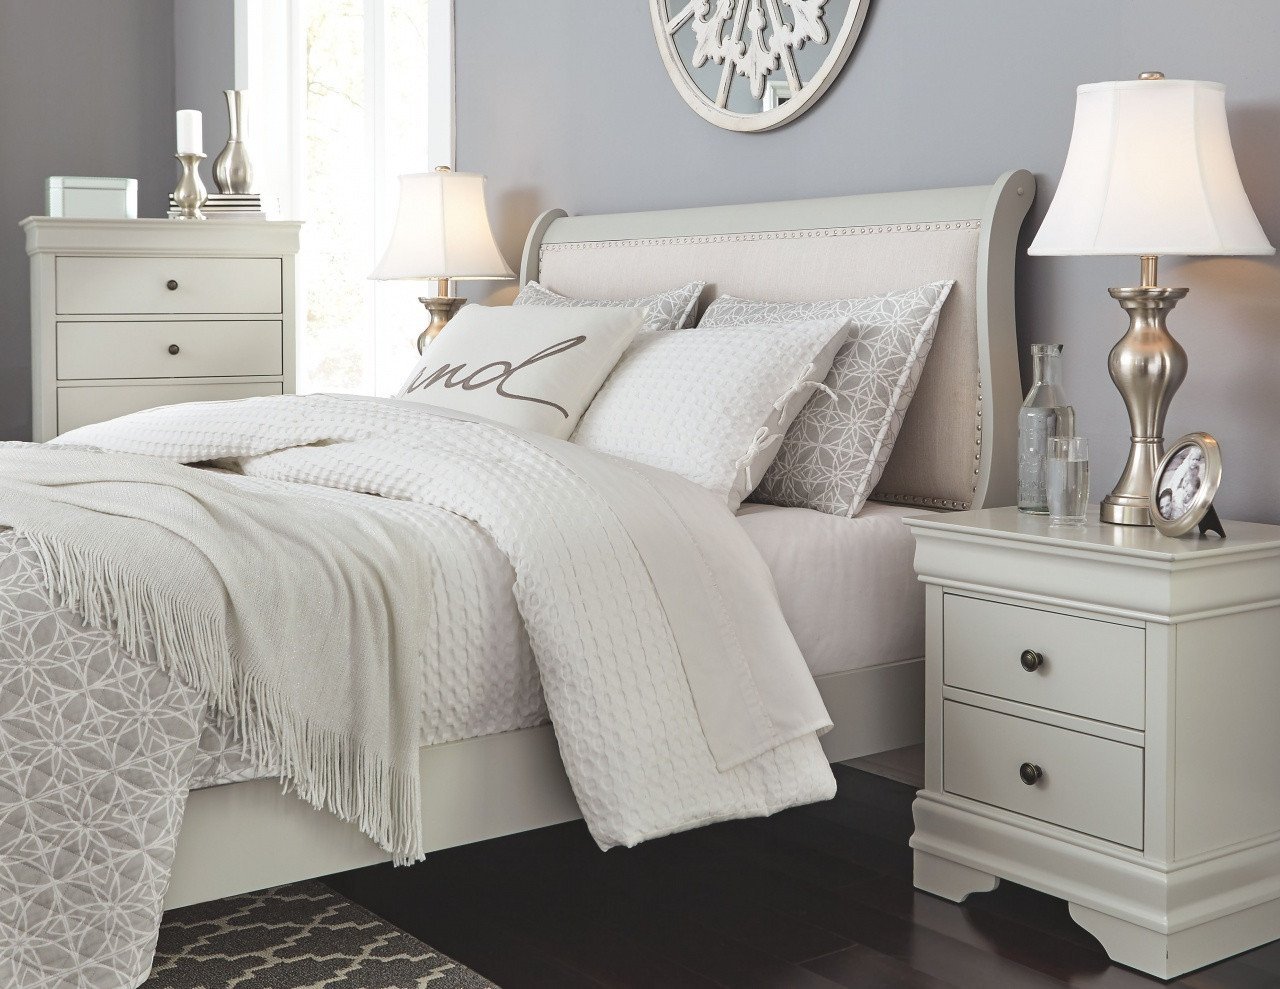 White and Gold Bedroom Set Luxury Grey and Gold Bedroom Ideas – Bunk Bed Ideas